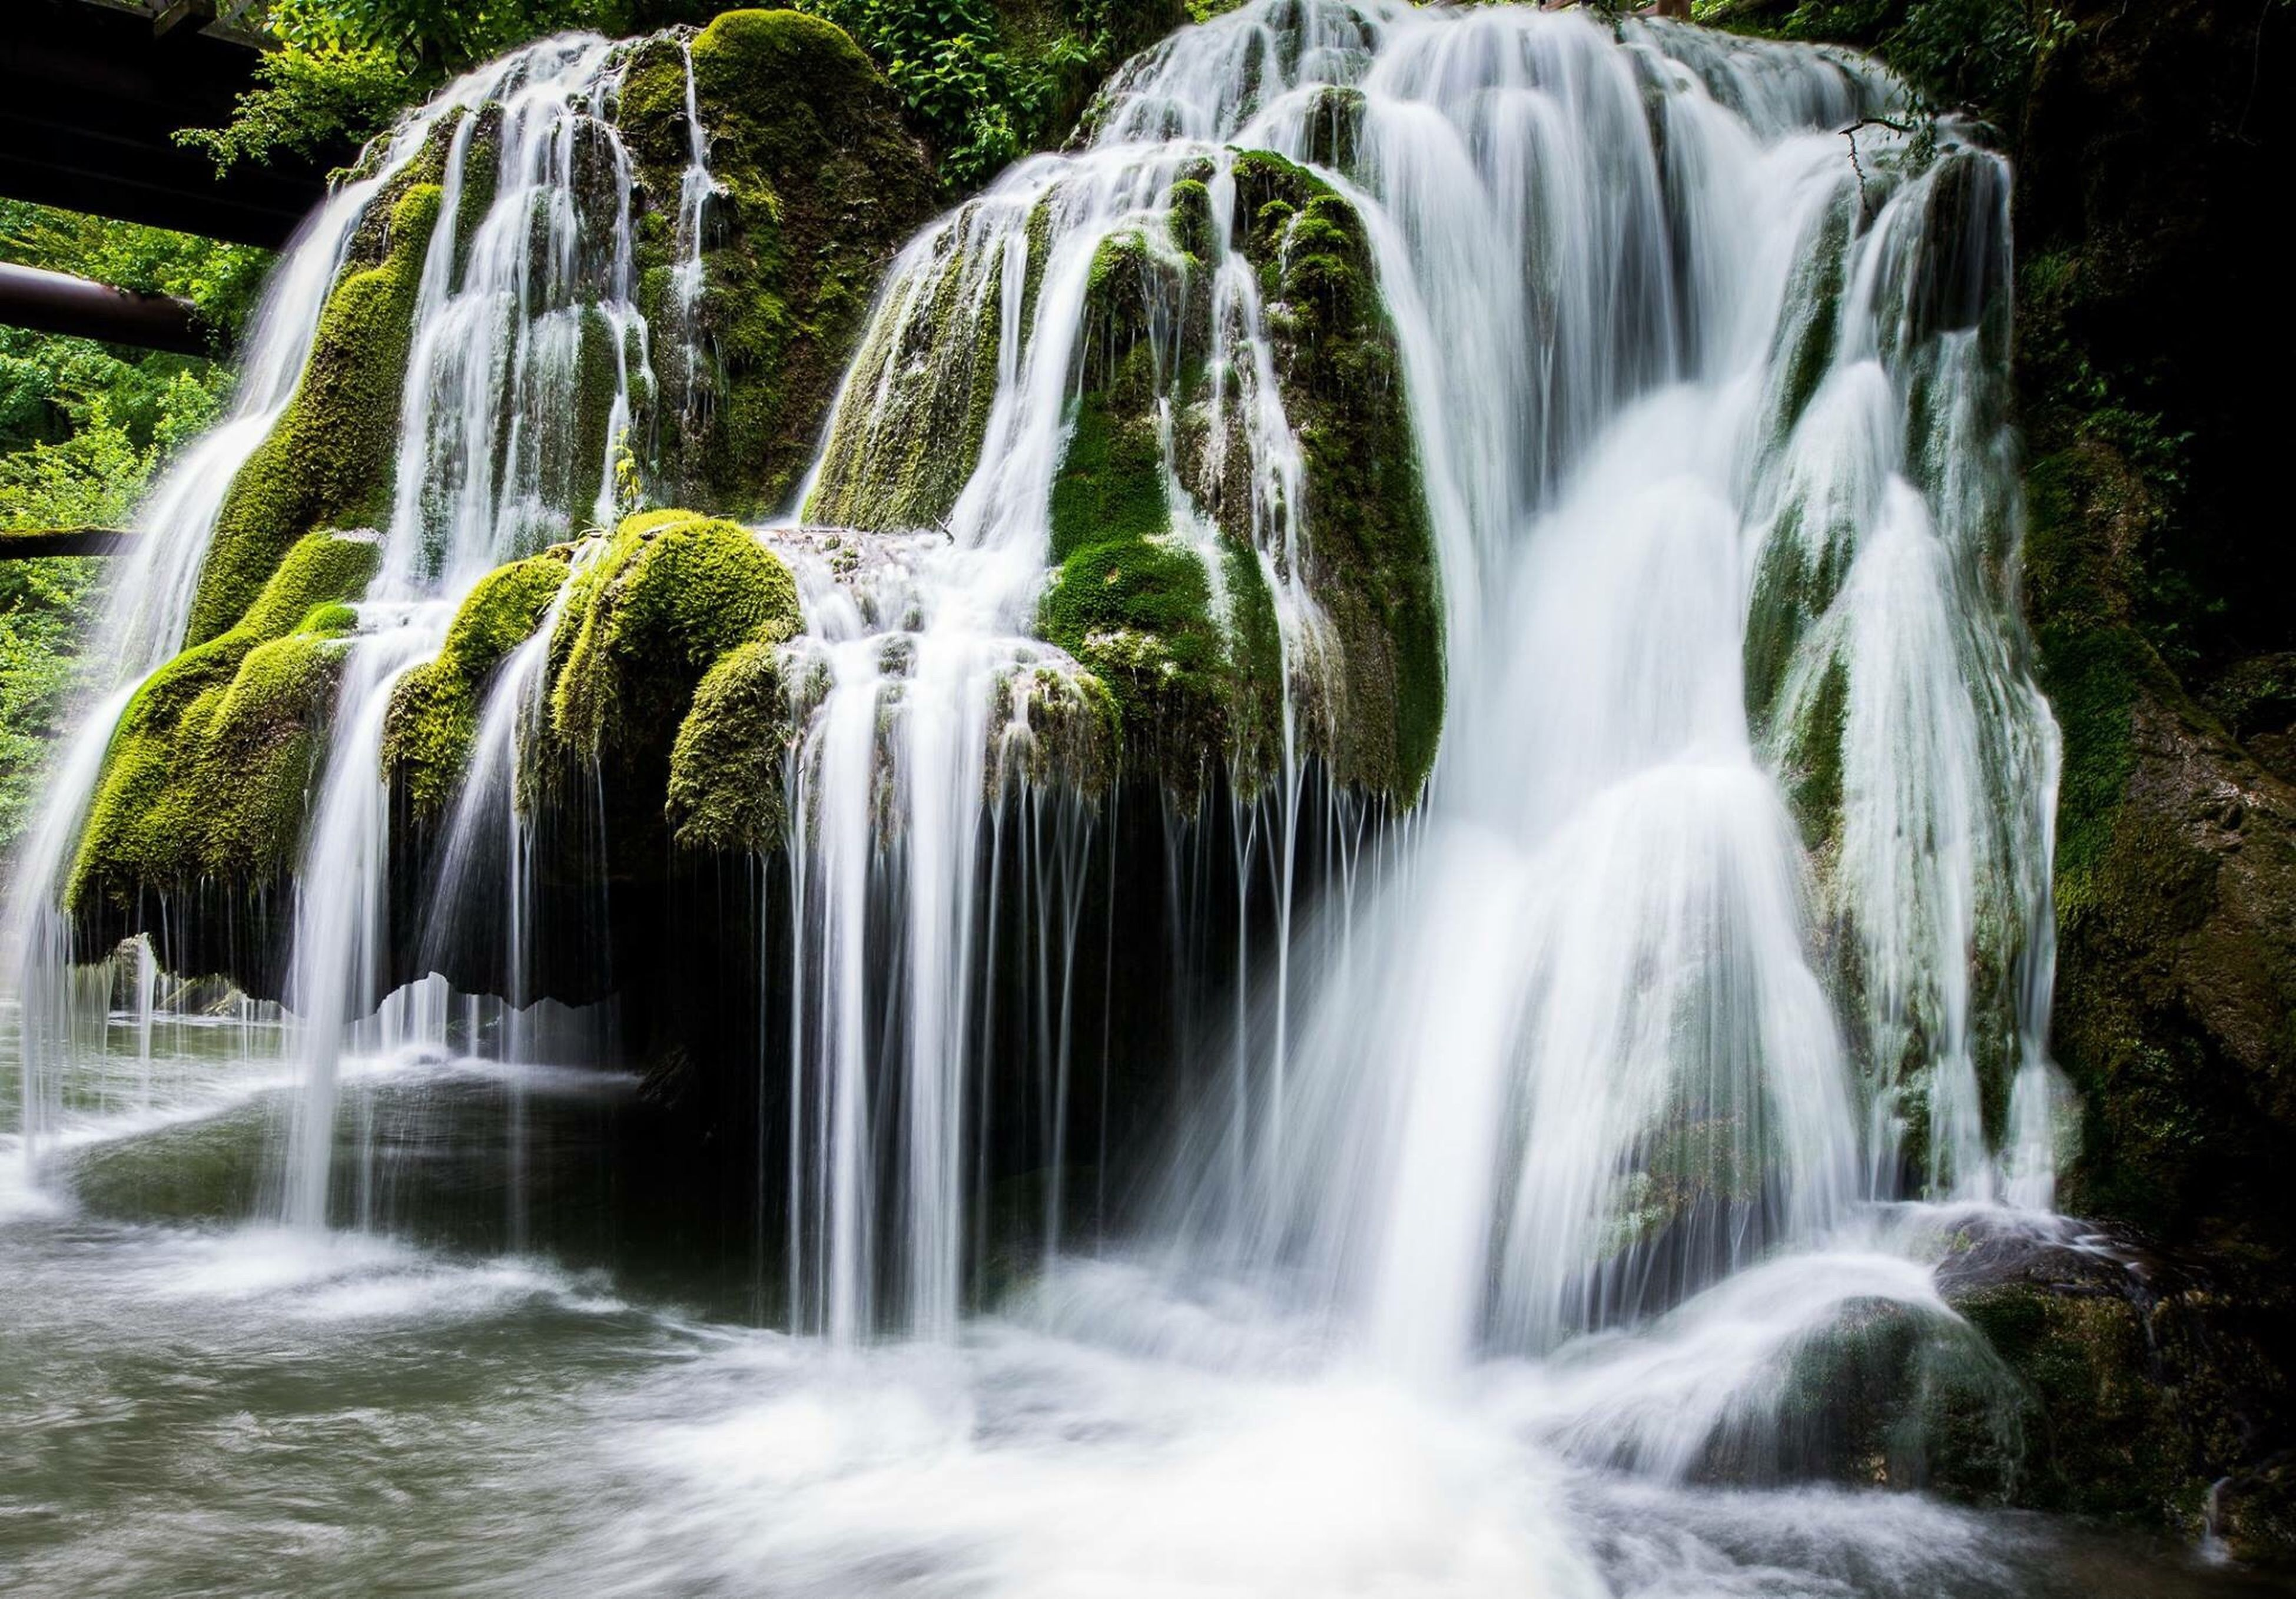 waterfall, water, motion, long exposure, scenics, beauty in nature, fountain, splashing, flowing water, nature, no people, flowing, idyllic, environmental conservation, tree, wet, stream - flowing water, running water, outdoors, freshness, sprinkling, day